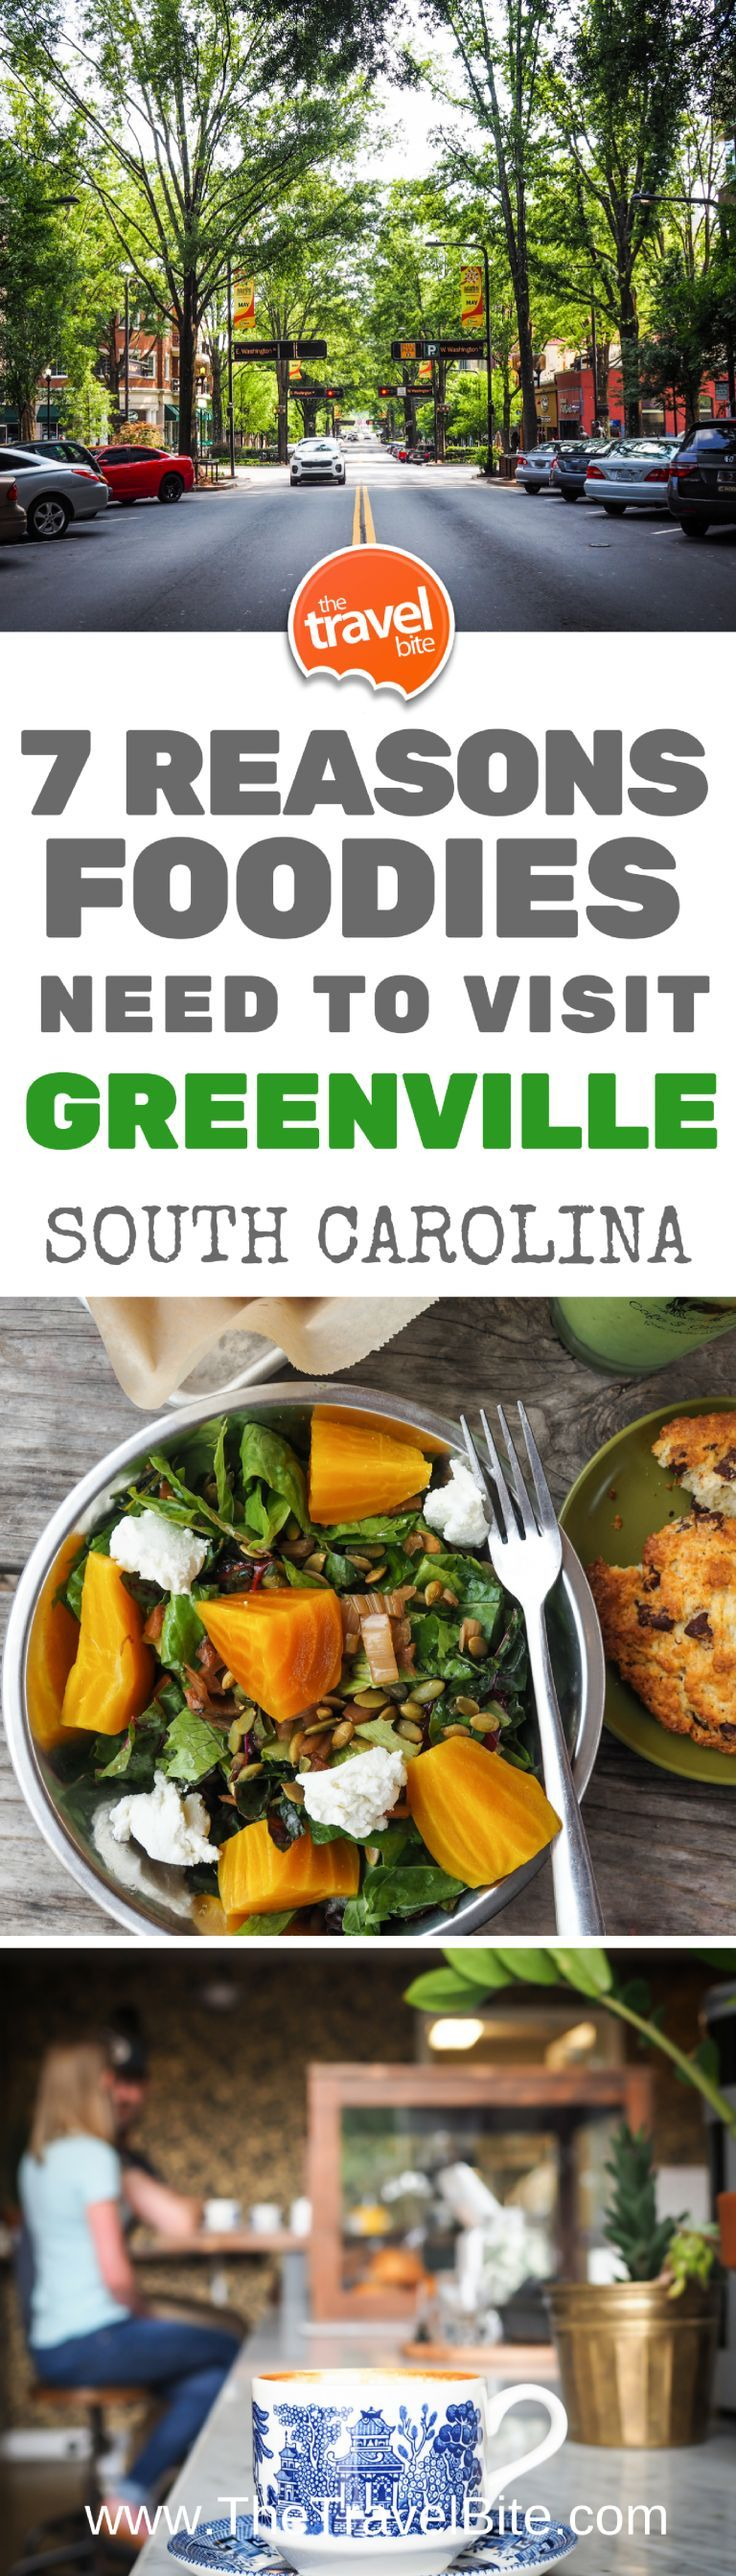 North charleston south carolina city information epodunk - When It Comes To Travel We Re Always Trying To Get Ahead Of The Trends And The Crowds So When I Was Asked To Visit Greenville South Carolina